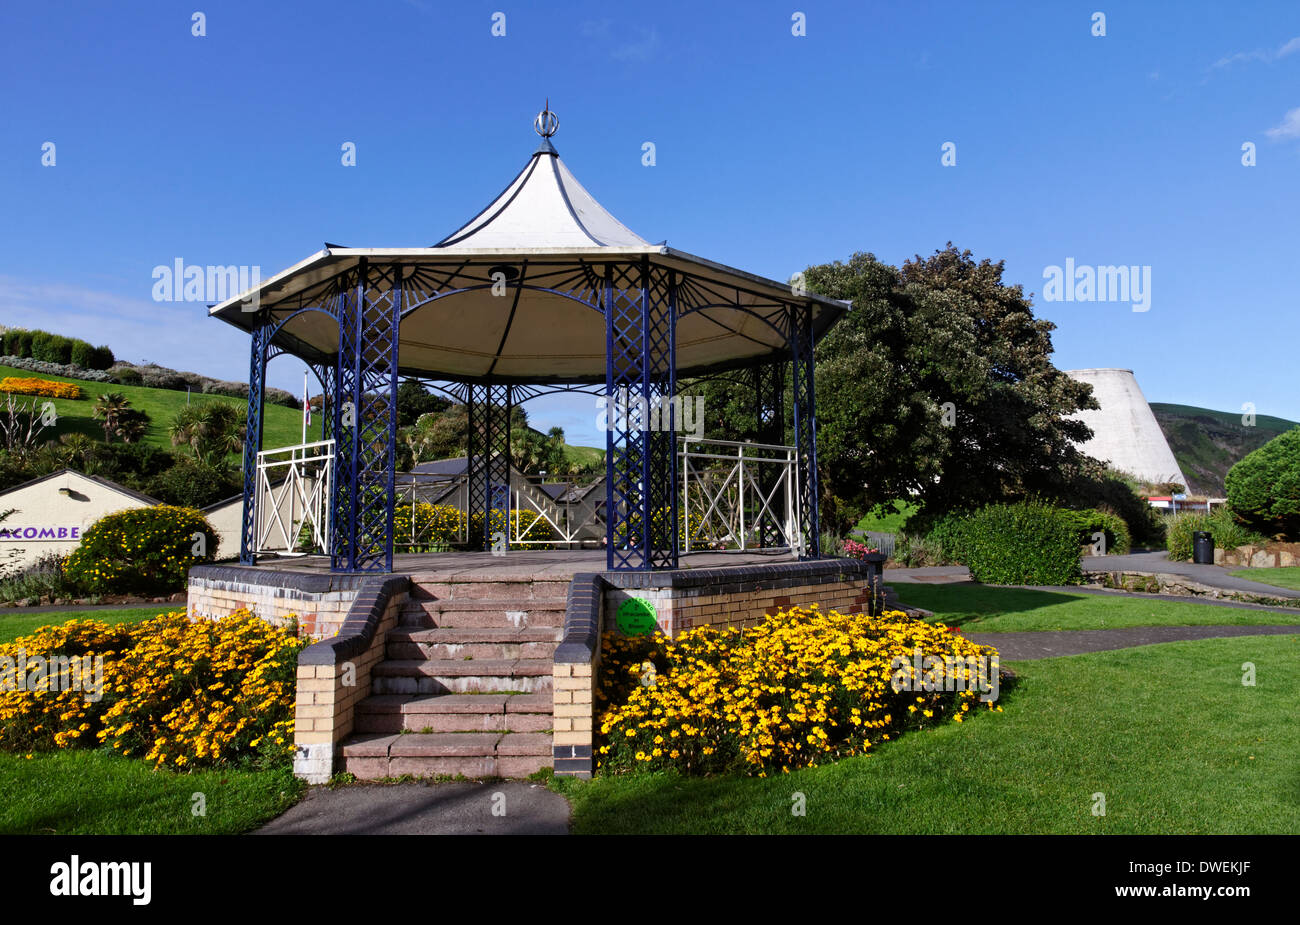 The bandstand at Ilfracombe, Devon, England - Stock Image